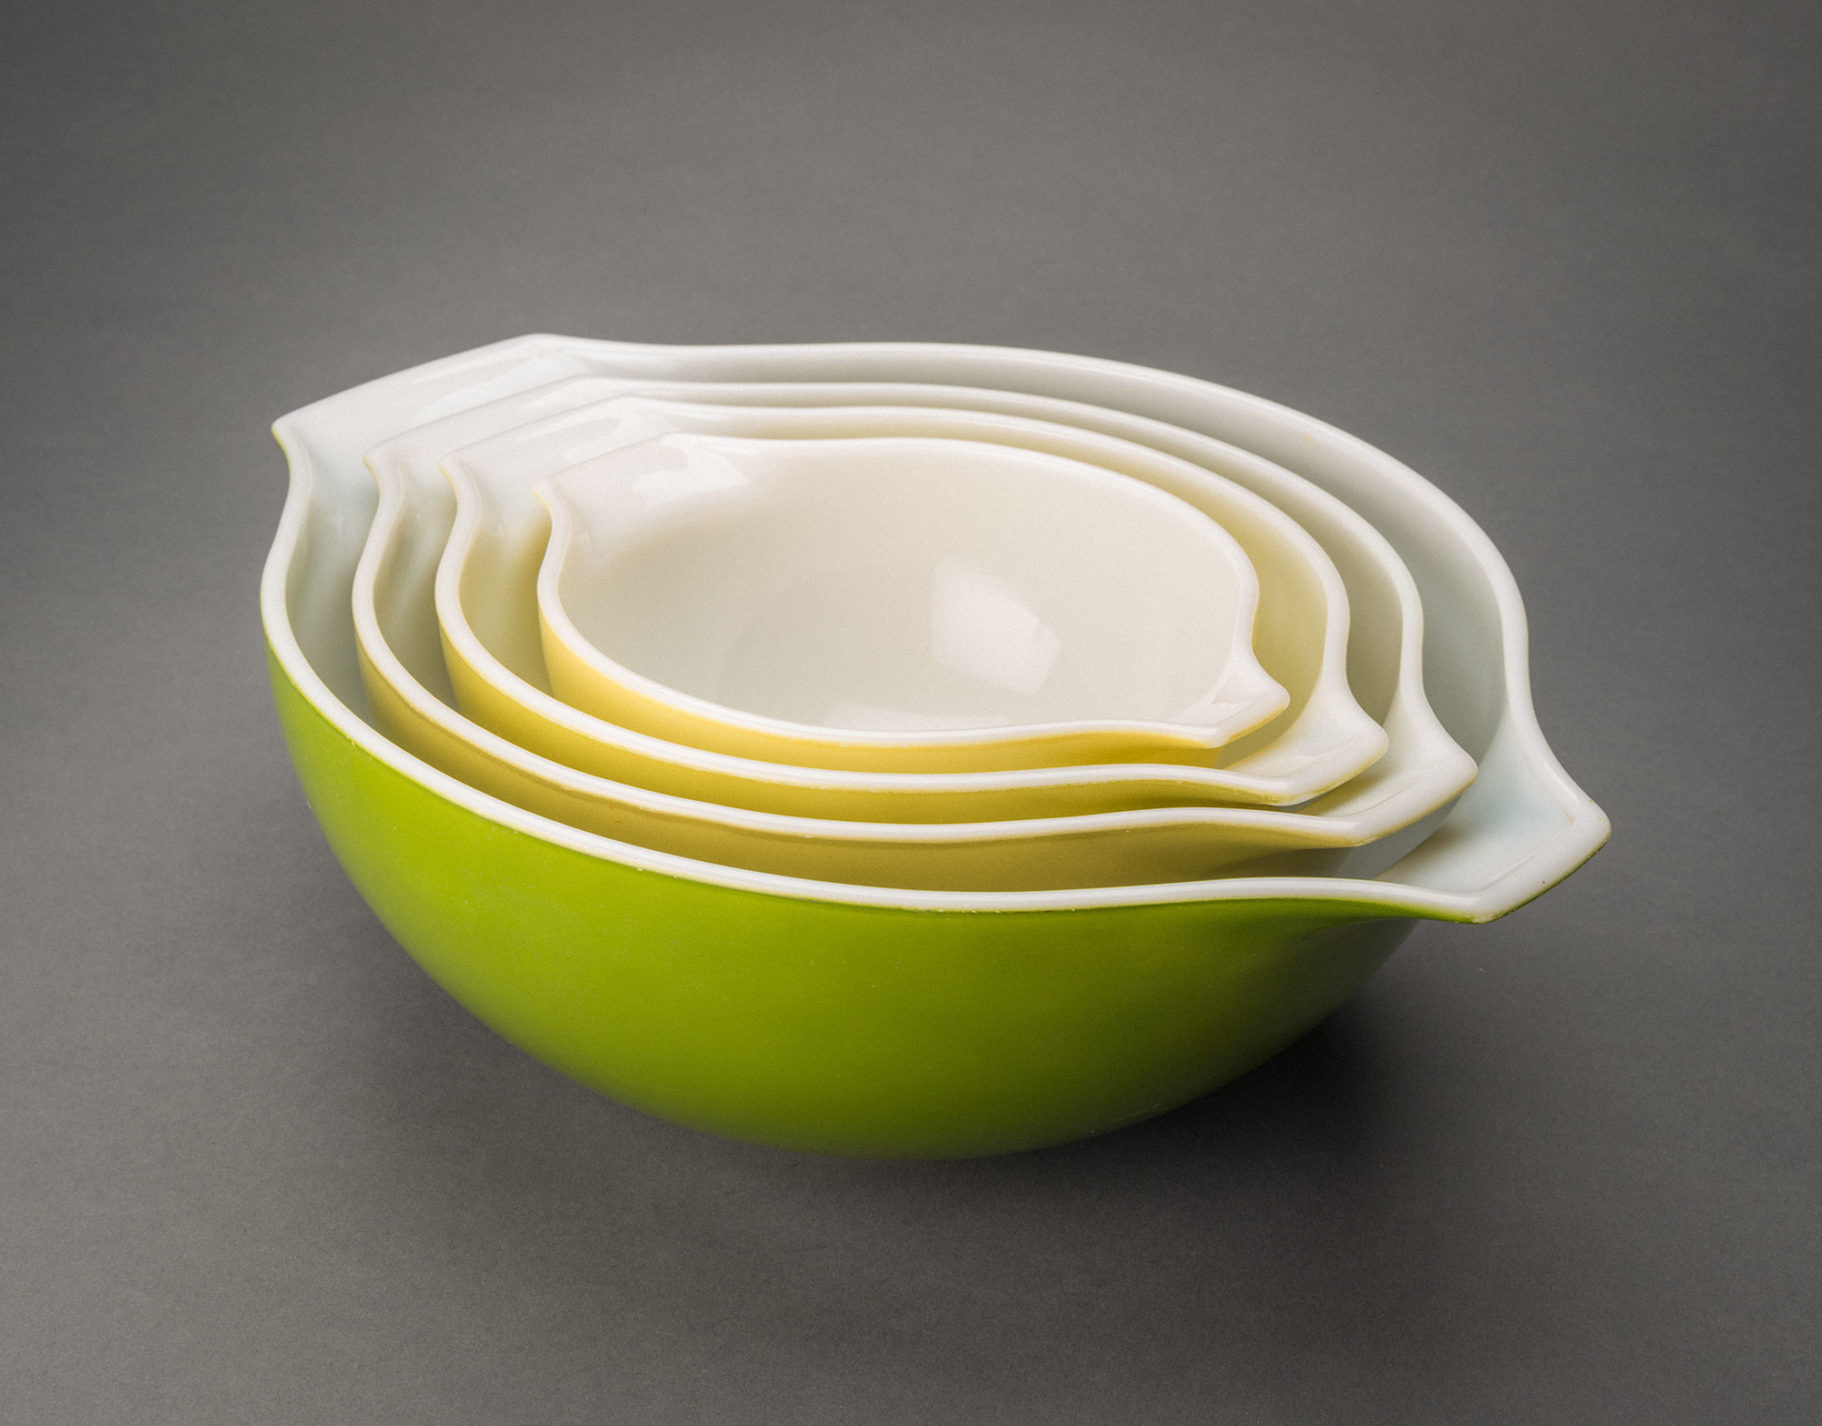 Set of four glass mixing bowls nested together. Each bowl has a white interior. The exterior colors, from smallest bowl to largest, are yellow, yellow-green, pale green, and medium green.